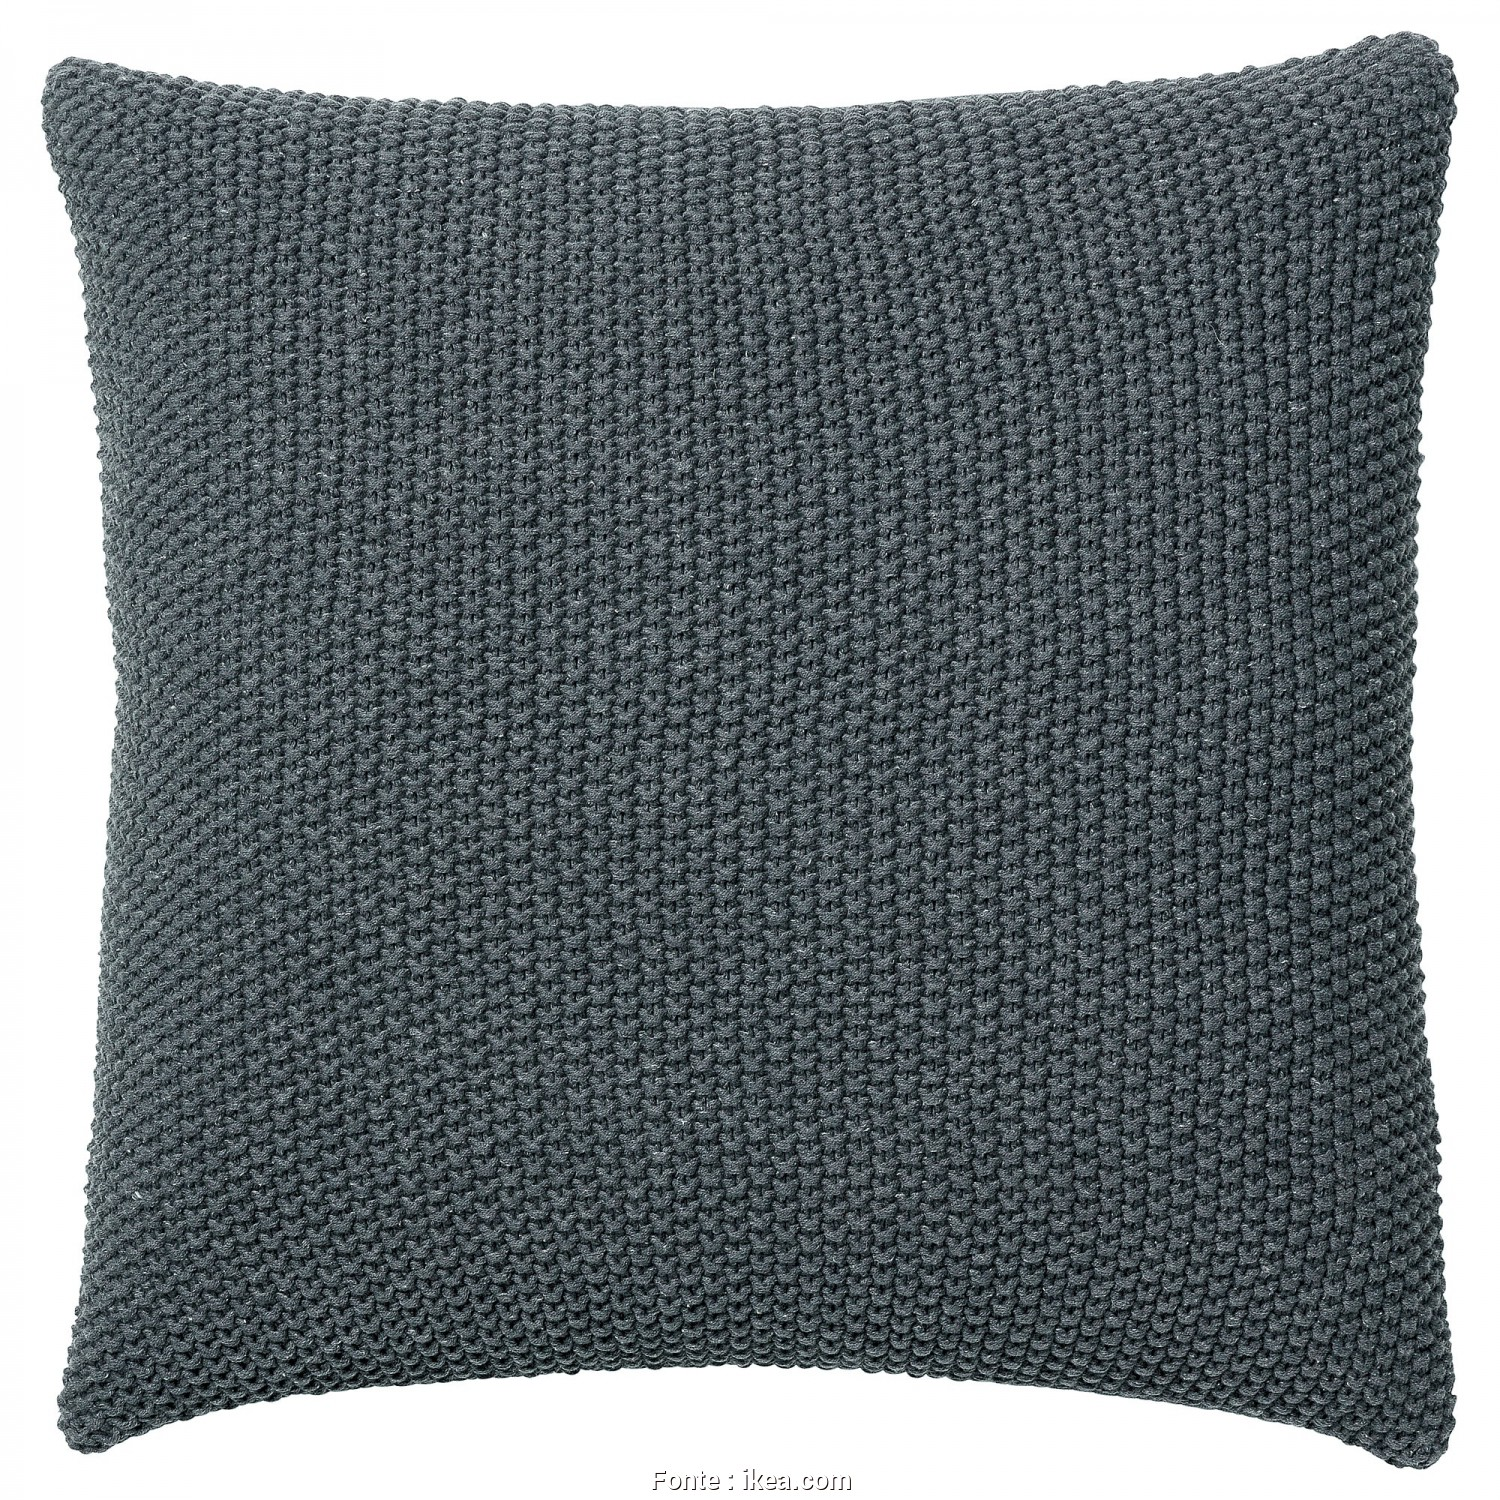 Copricuscini Ikea 50X50, Bella IKEA DORTHE Cushion, Duck Feather Filling Feels Fluffy, Gives Your Body Excellent Support